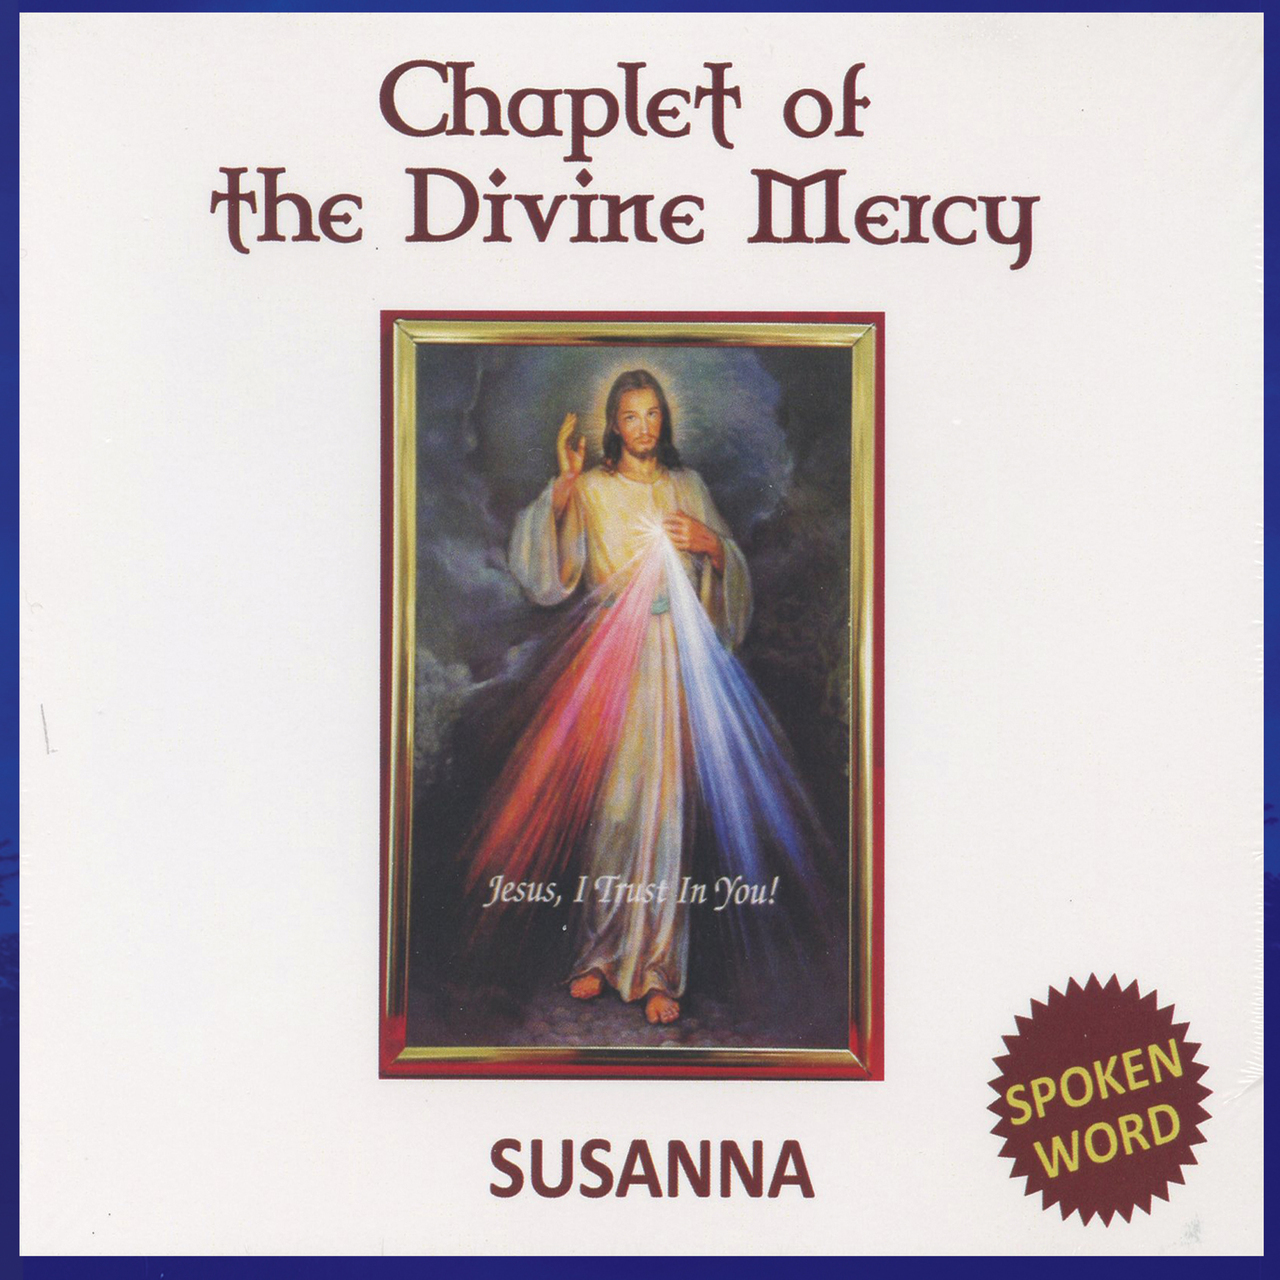 Chaplet of the divine mercy with susanna1